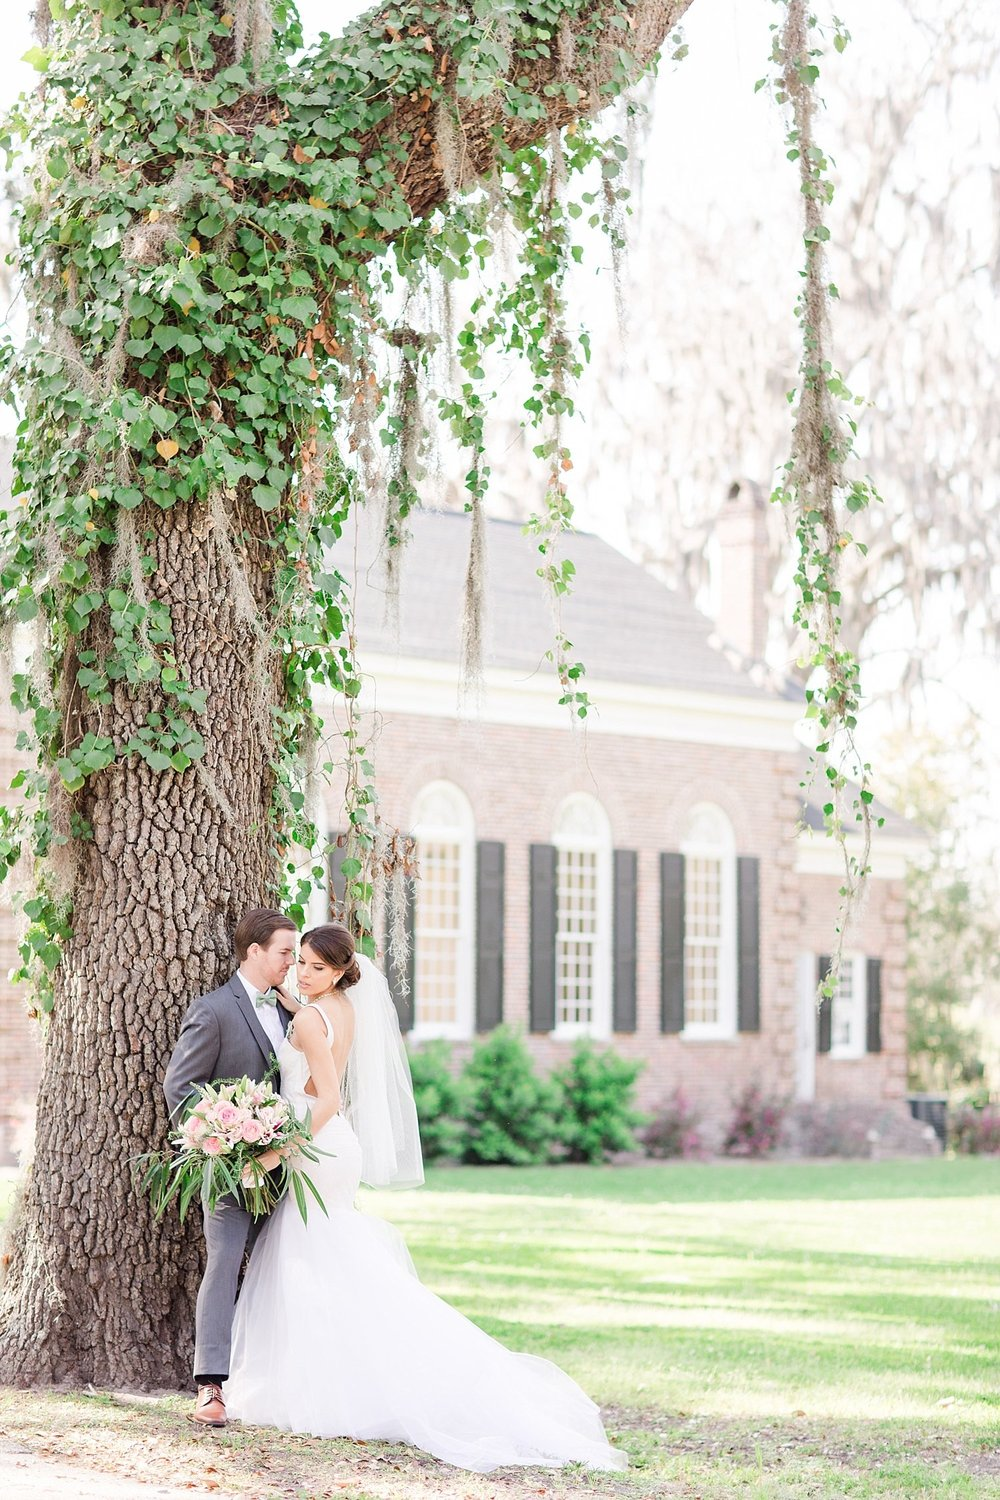 rachel-strickland-photography-katie-may-ivory-and-beau-bridal-boutique-bethesda-academy-wedding-whitfield-chapel-wedding-savannah-bridal-boutique-savannah-weddings-savannah-wedding-savannah-wedding-planner-savannah-bridal-gowns-savannah-bride-5.jpg